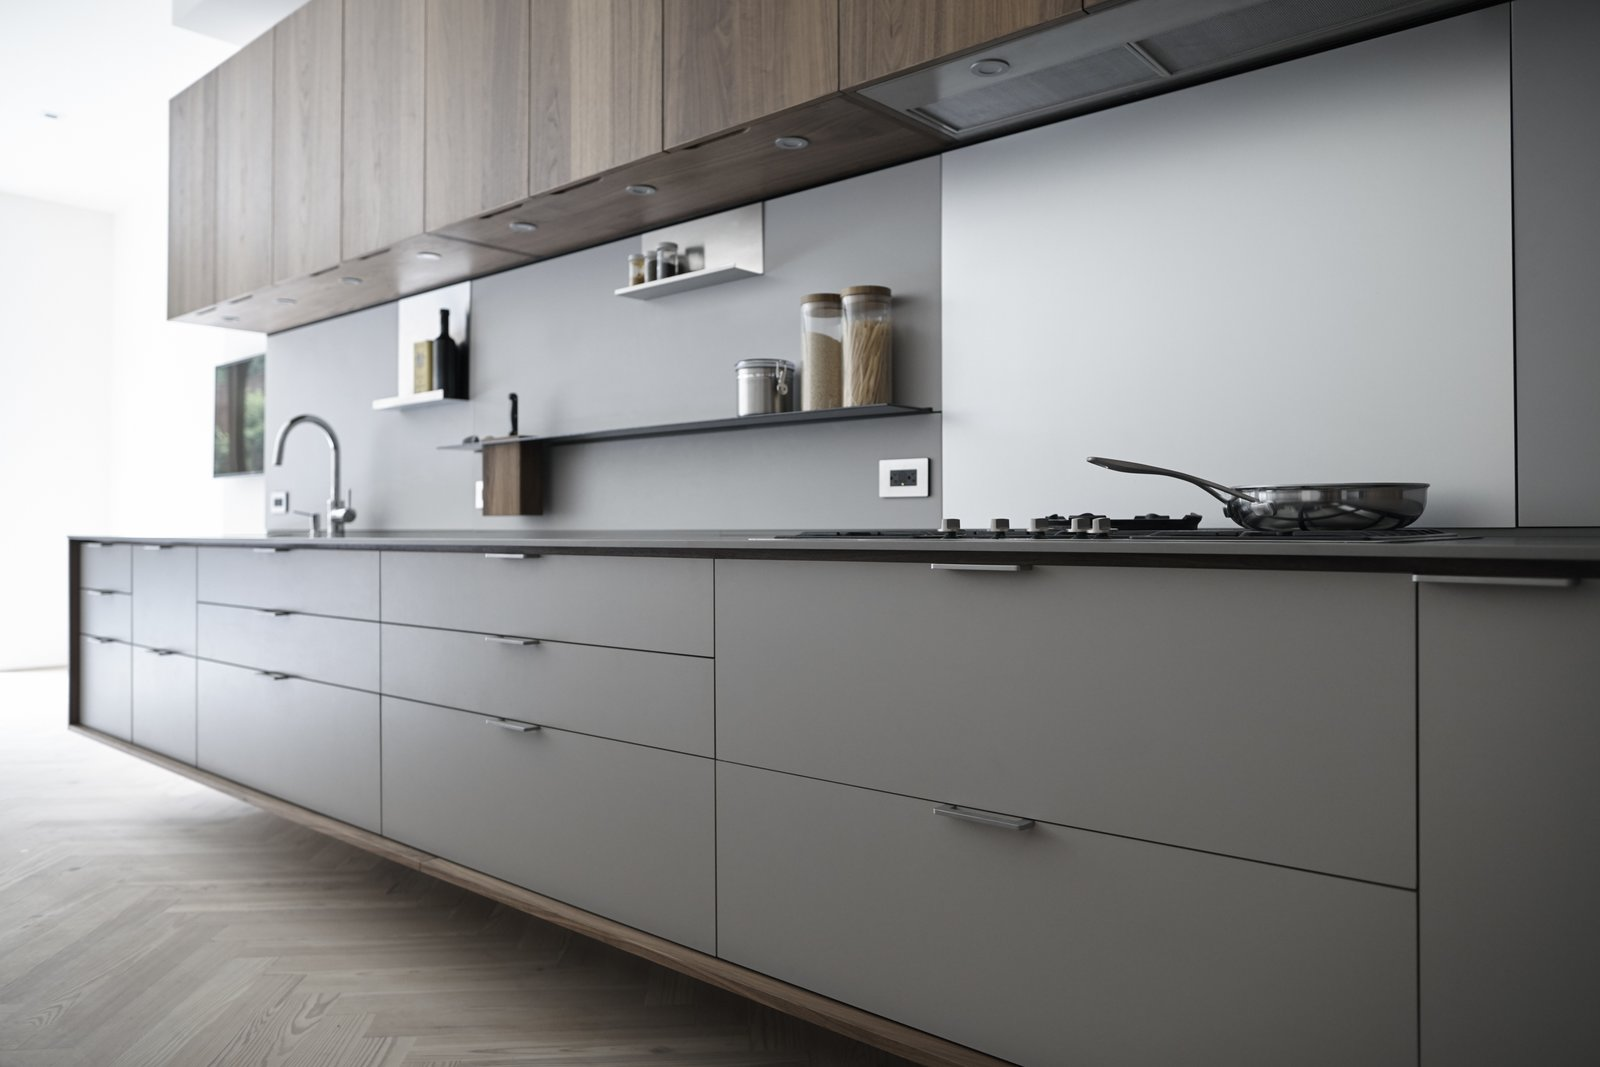 In a Henrybuilt kitchen system, every detail helps orchestrate a streamlined experience. For example, the pulls above protrude to match the plane of the counter and end panels. Drain fields are milled onto work surfaces to fit custom cutting boards and colanders, and low energy LED lights are morticed into the bottom of wall units, which have scoops instead of handles.  Photo 2 of 9 in The Whole House System That Unifies Every Room